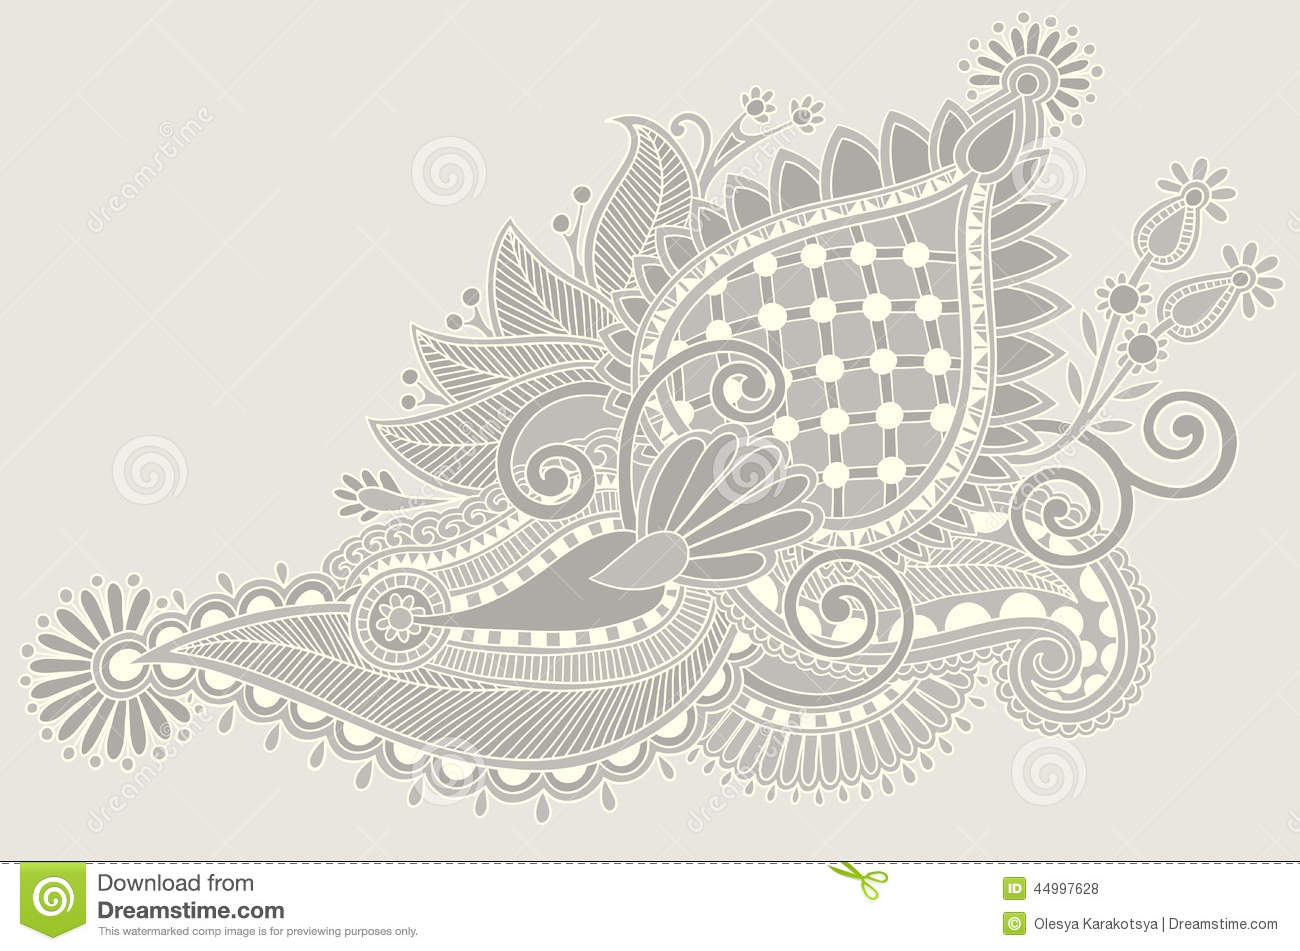 Traditional Flower Line Drawing : Original hand draw line art ornate flower design stock